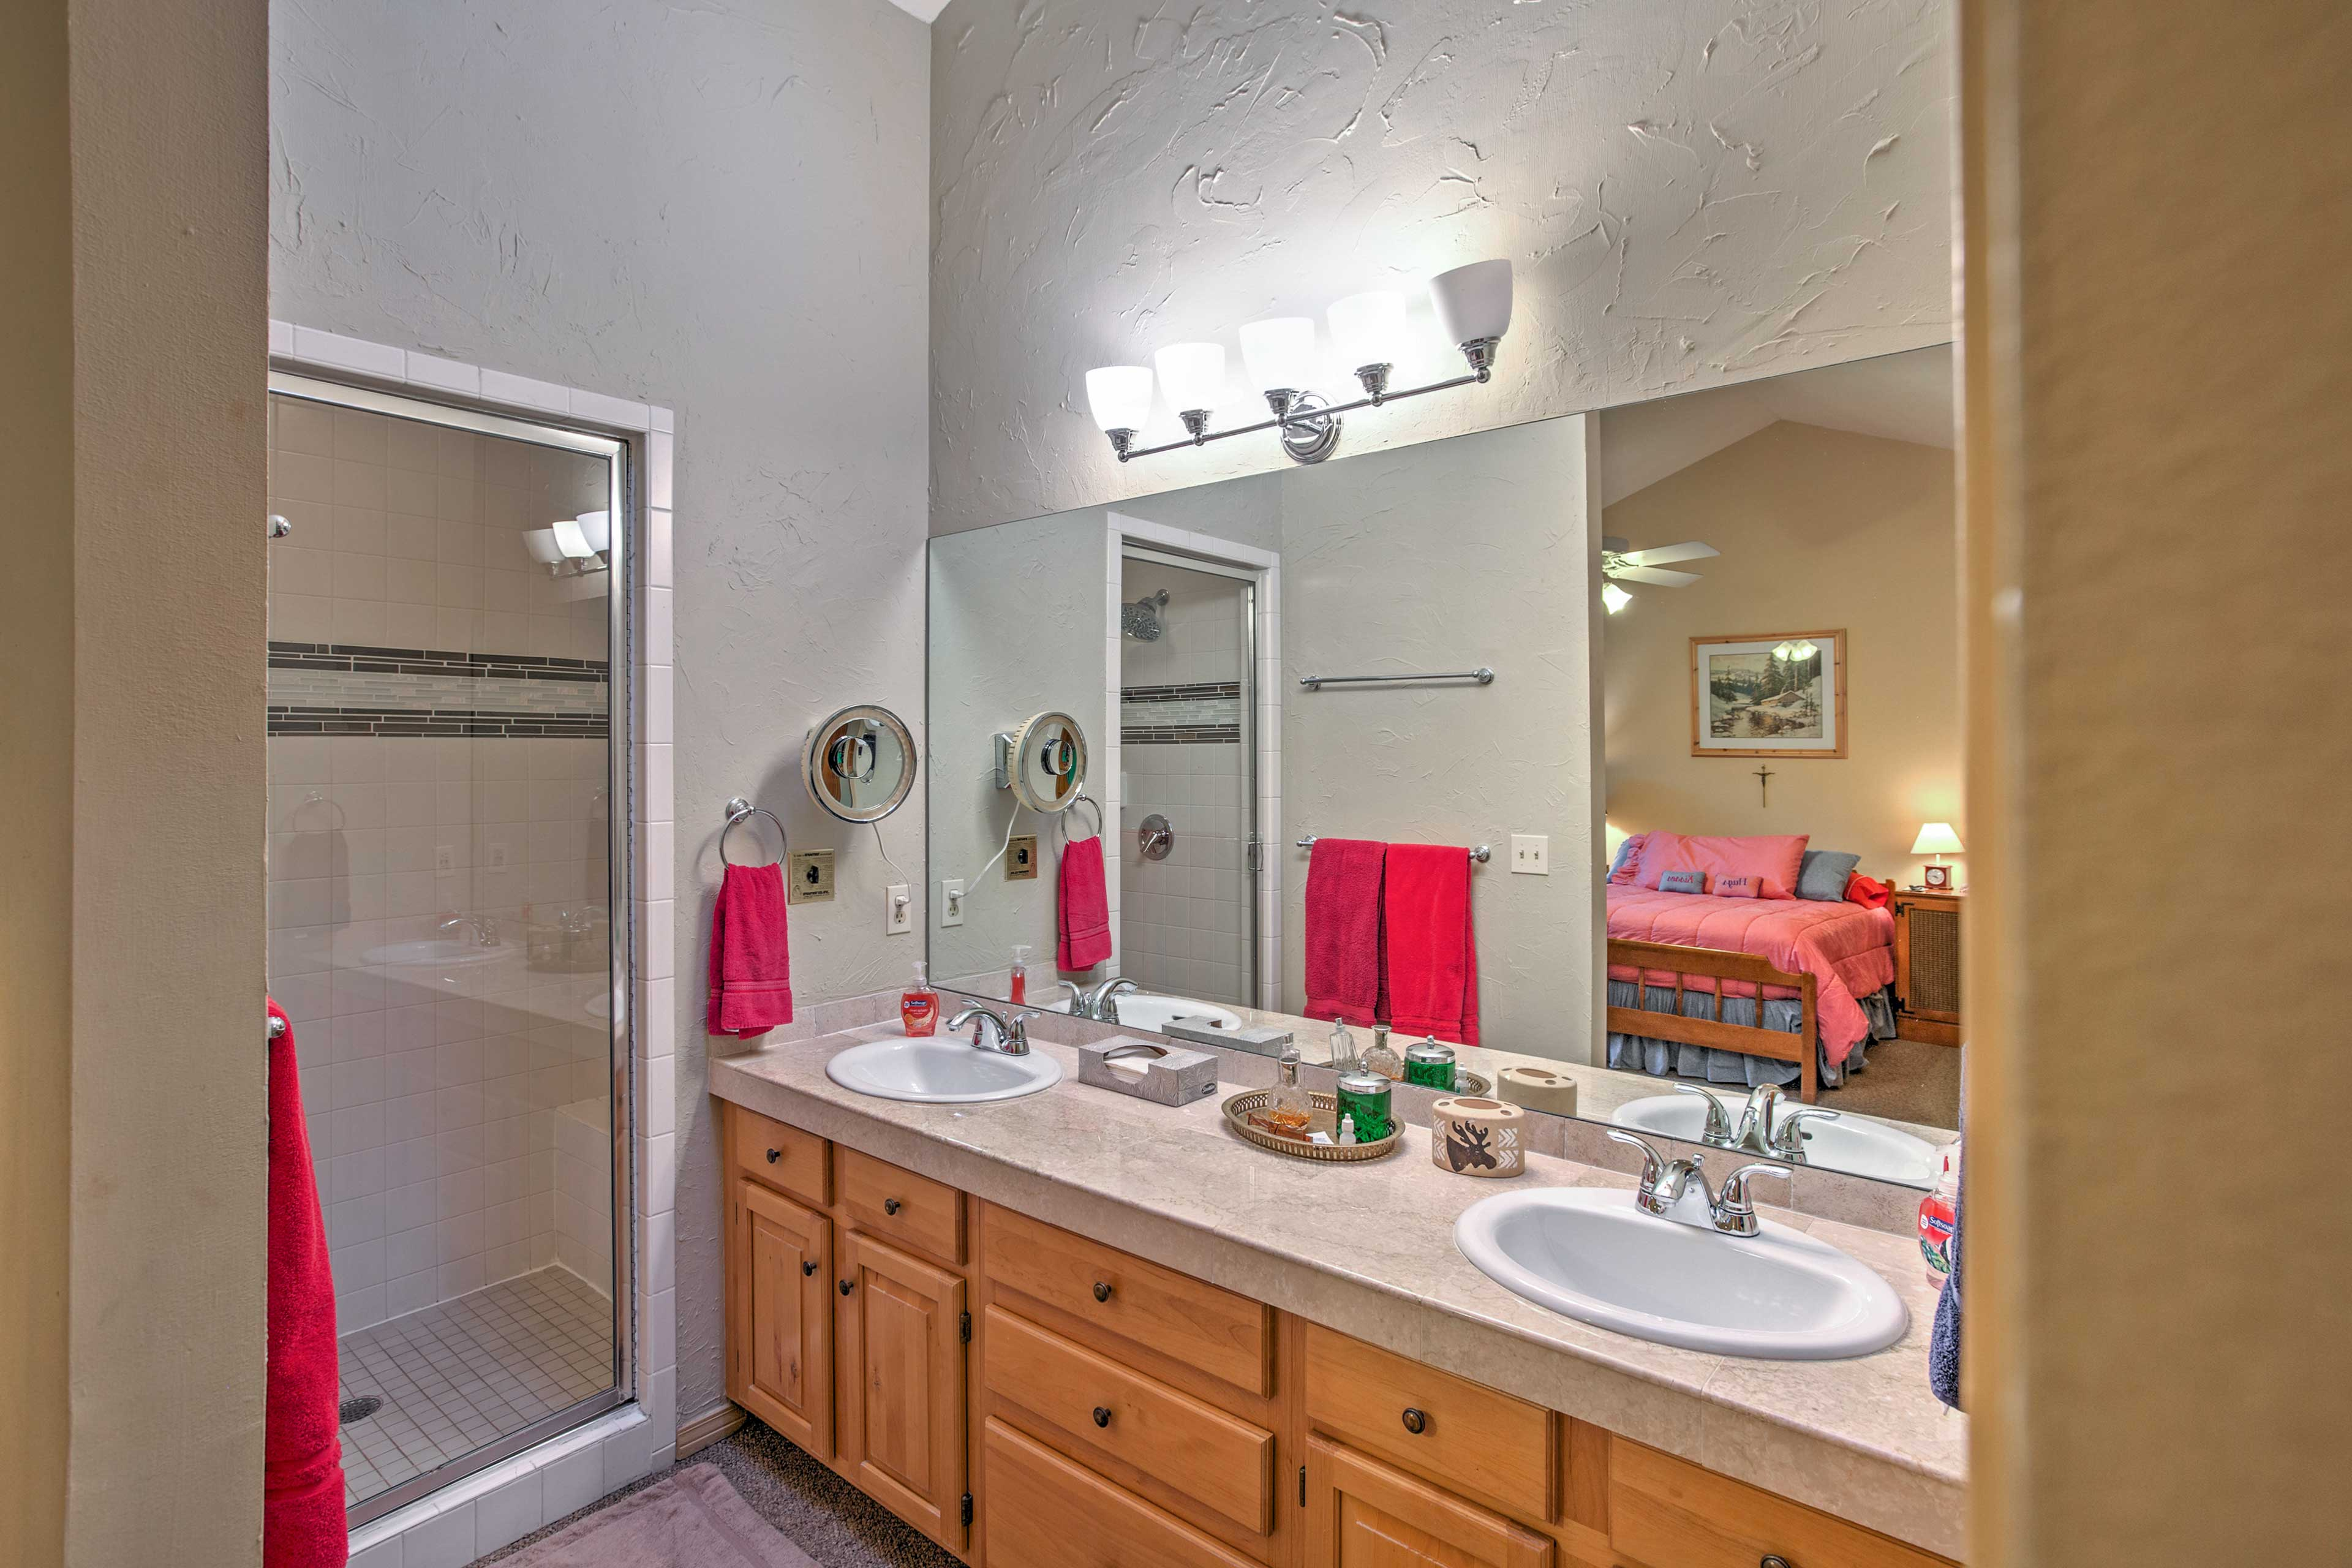 Freshen up for the day in the spacious bathroom!